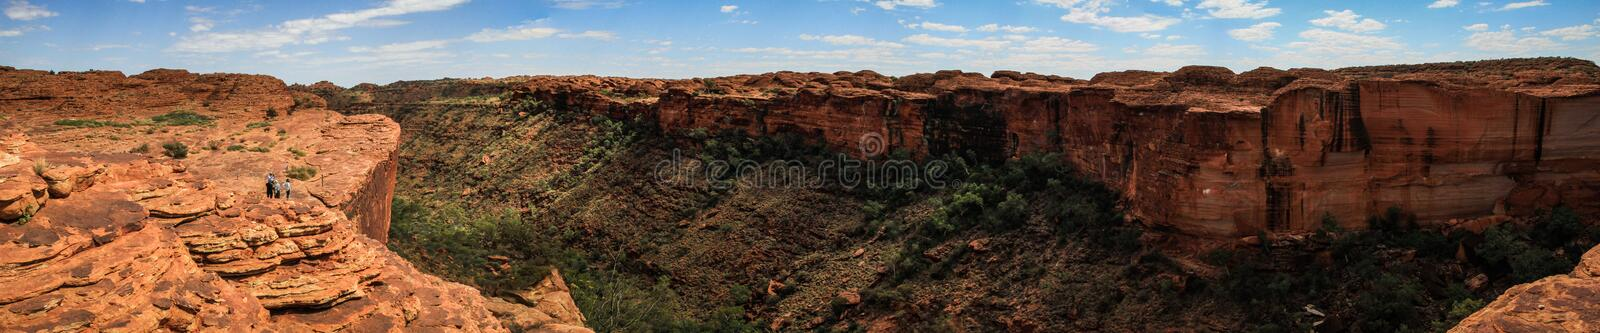 Panoramic view on the impressive King`s Canyon, Northern Territory, Australia. Kings Canyon is a canyon in the Northern Territory of Australia located at the royalty free stock photography